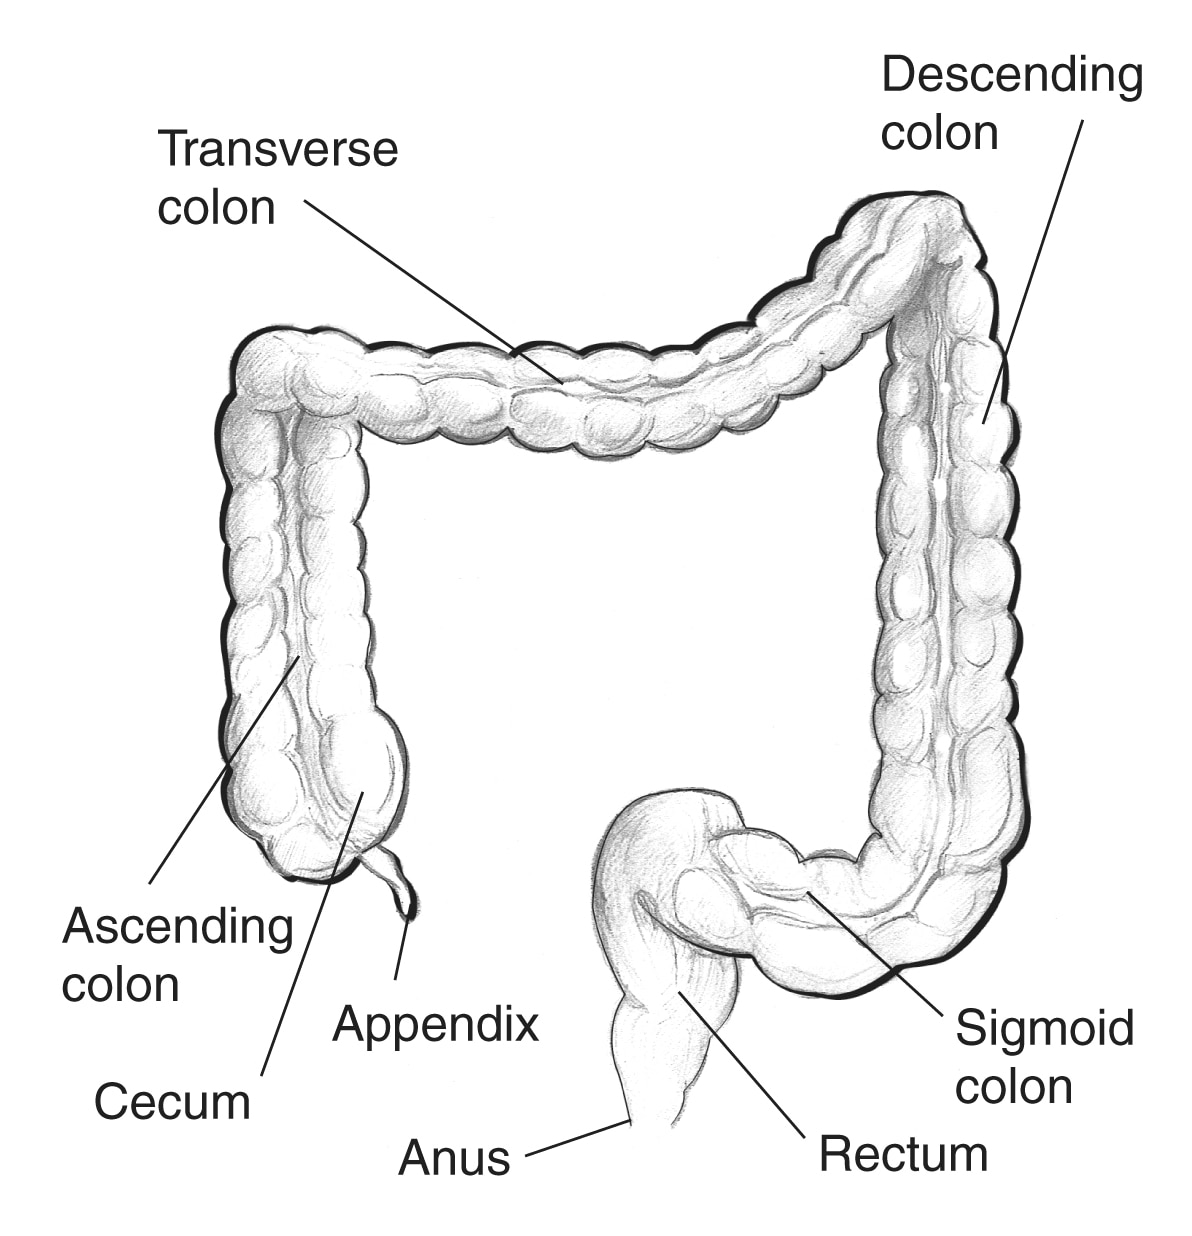 Large Intestine With Labels For The Appendix Cecum